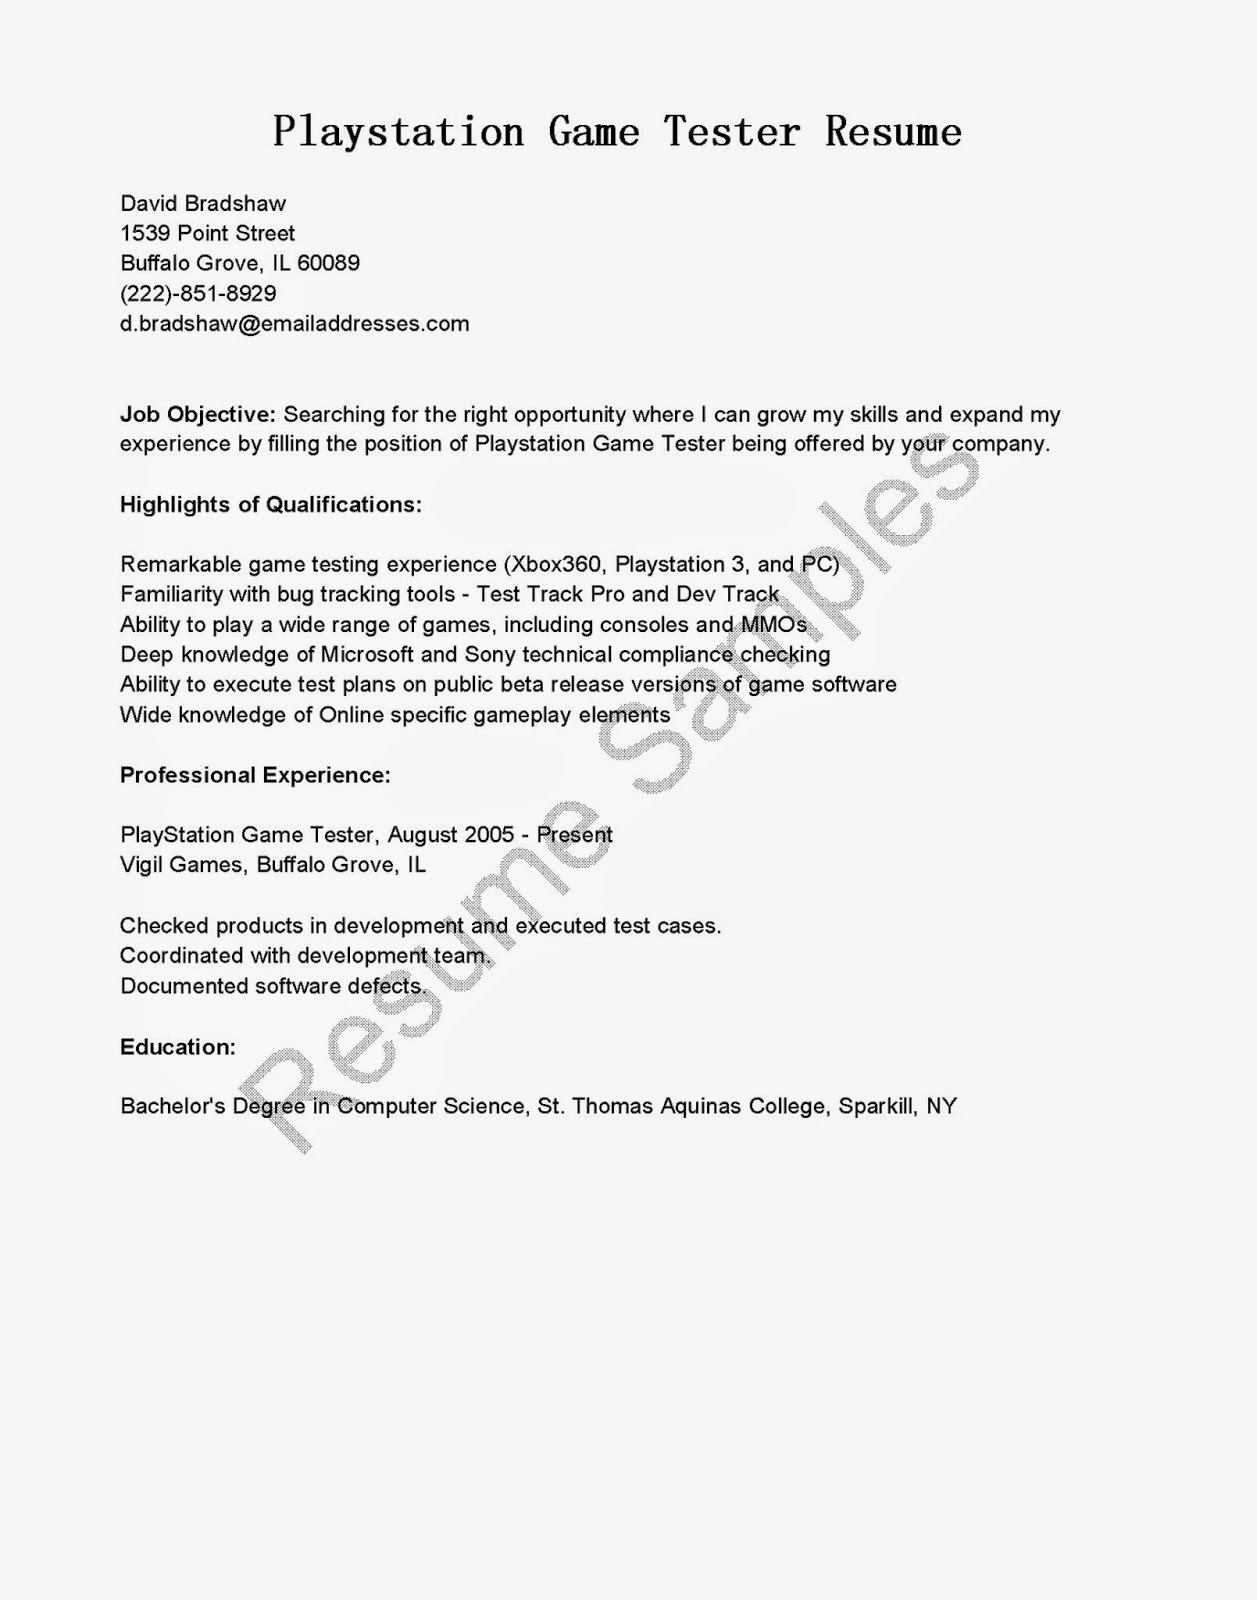 Real Game Tester Cover Letter